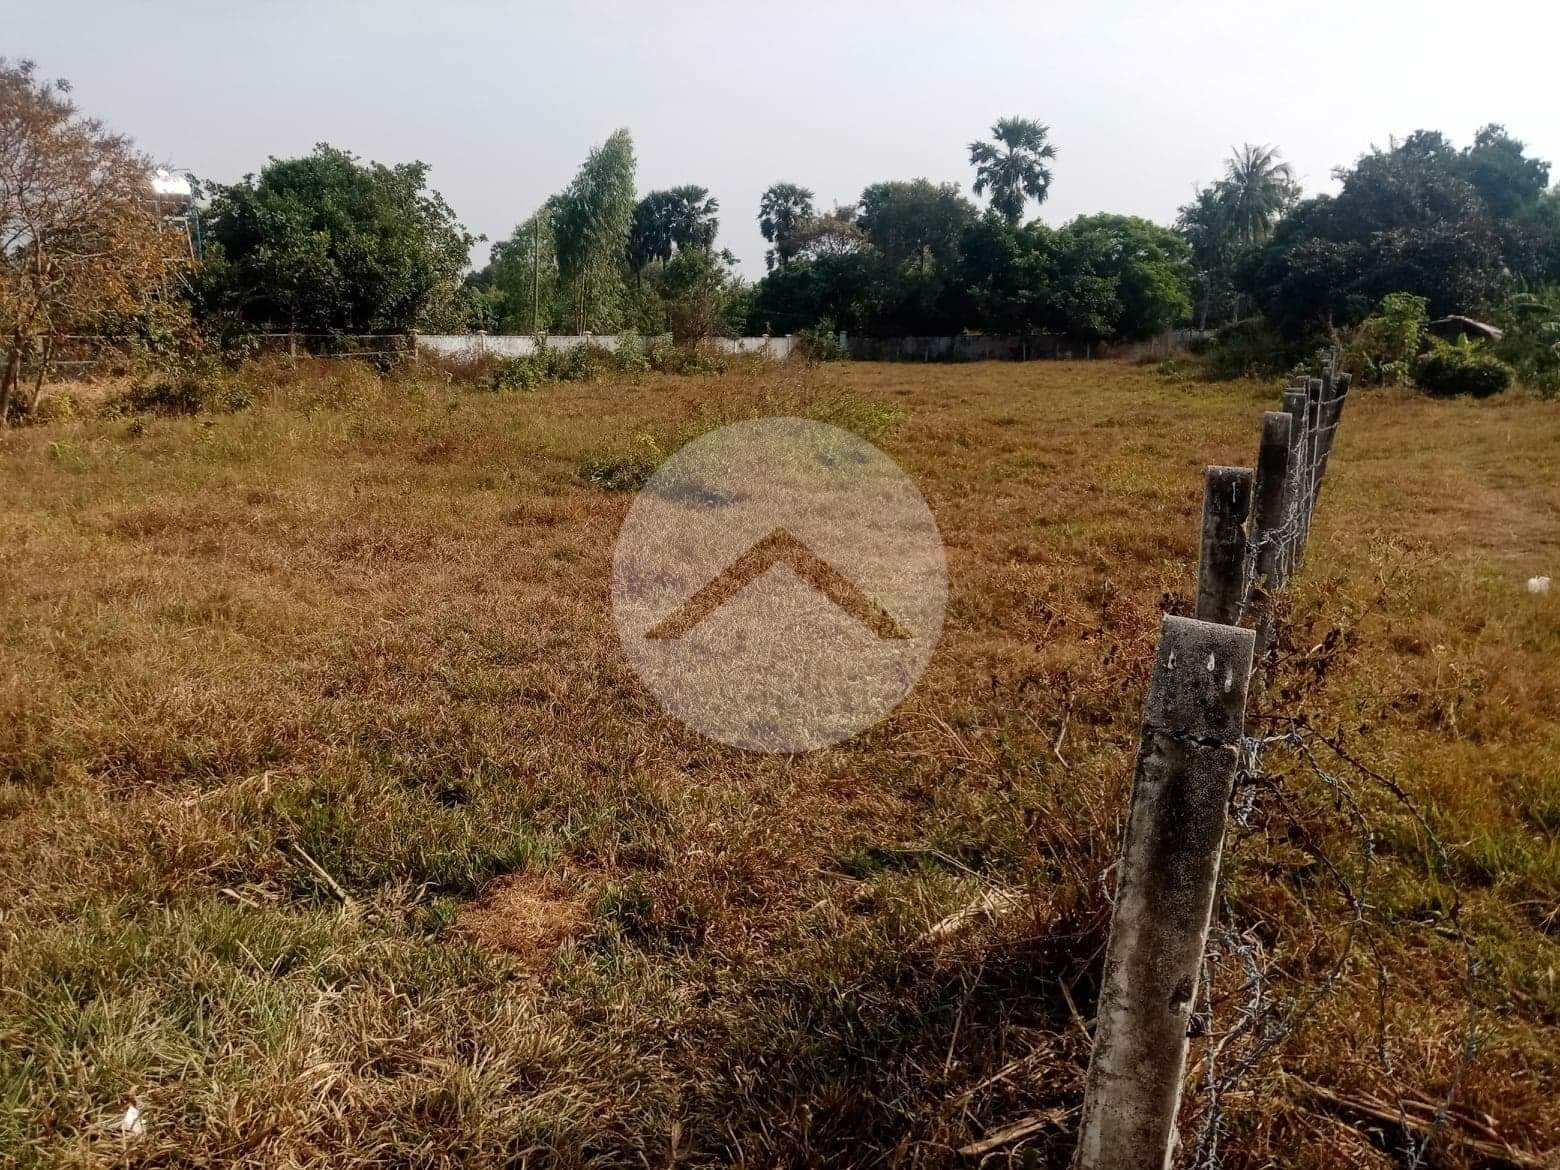 3039 Sqm Land For Sale - Kep, Cambodia